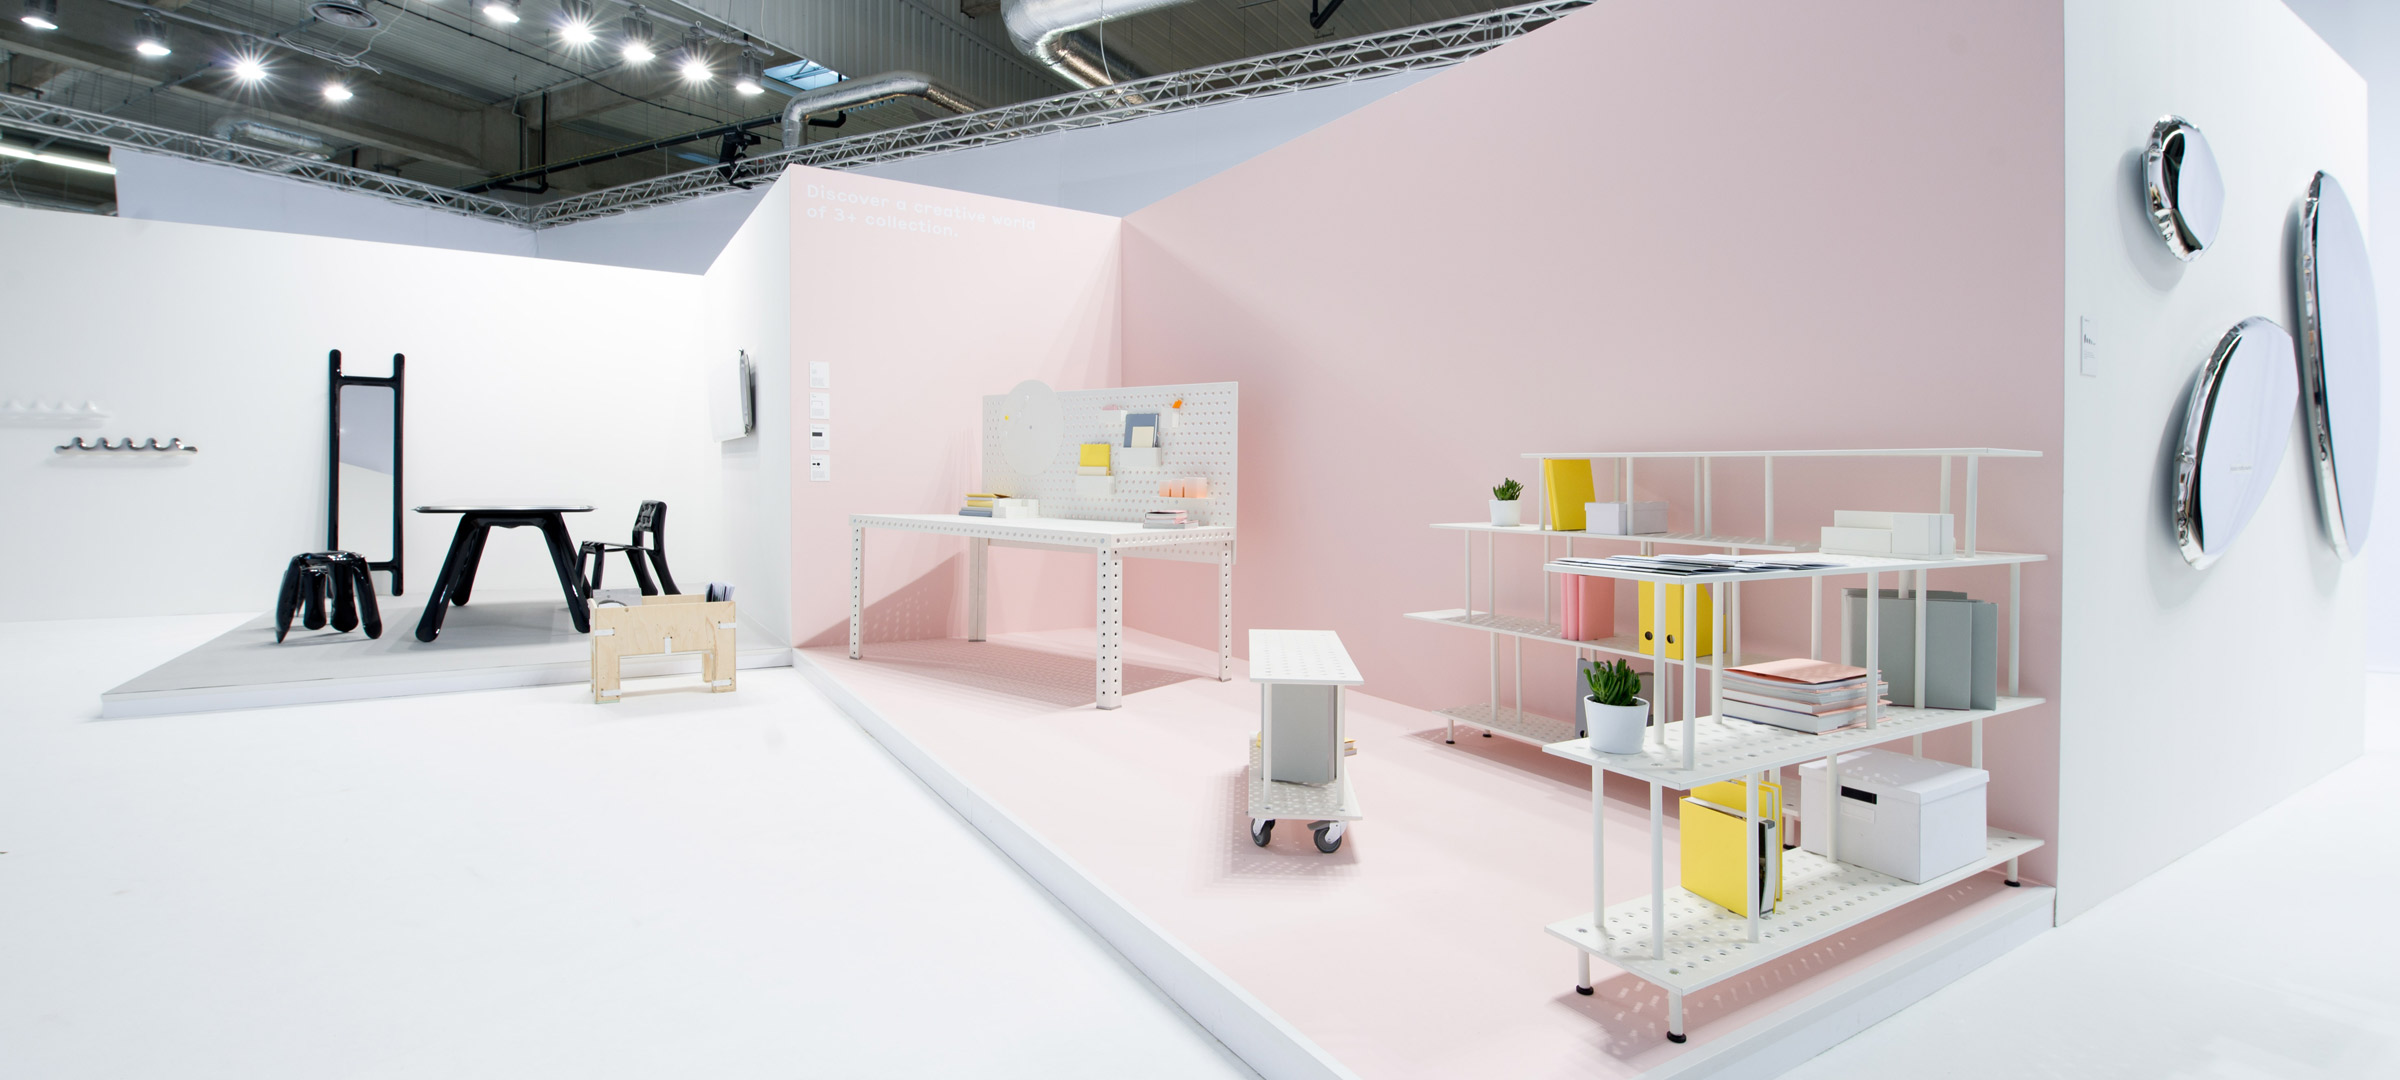 Beau Warsaw Home Expo Was The First Edition Of An International Exhibition  Concerning Interior Design, Organized In A New International Exhibition U0026  Congress ...